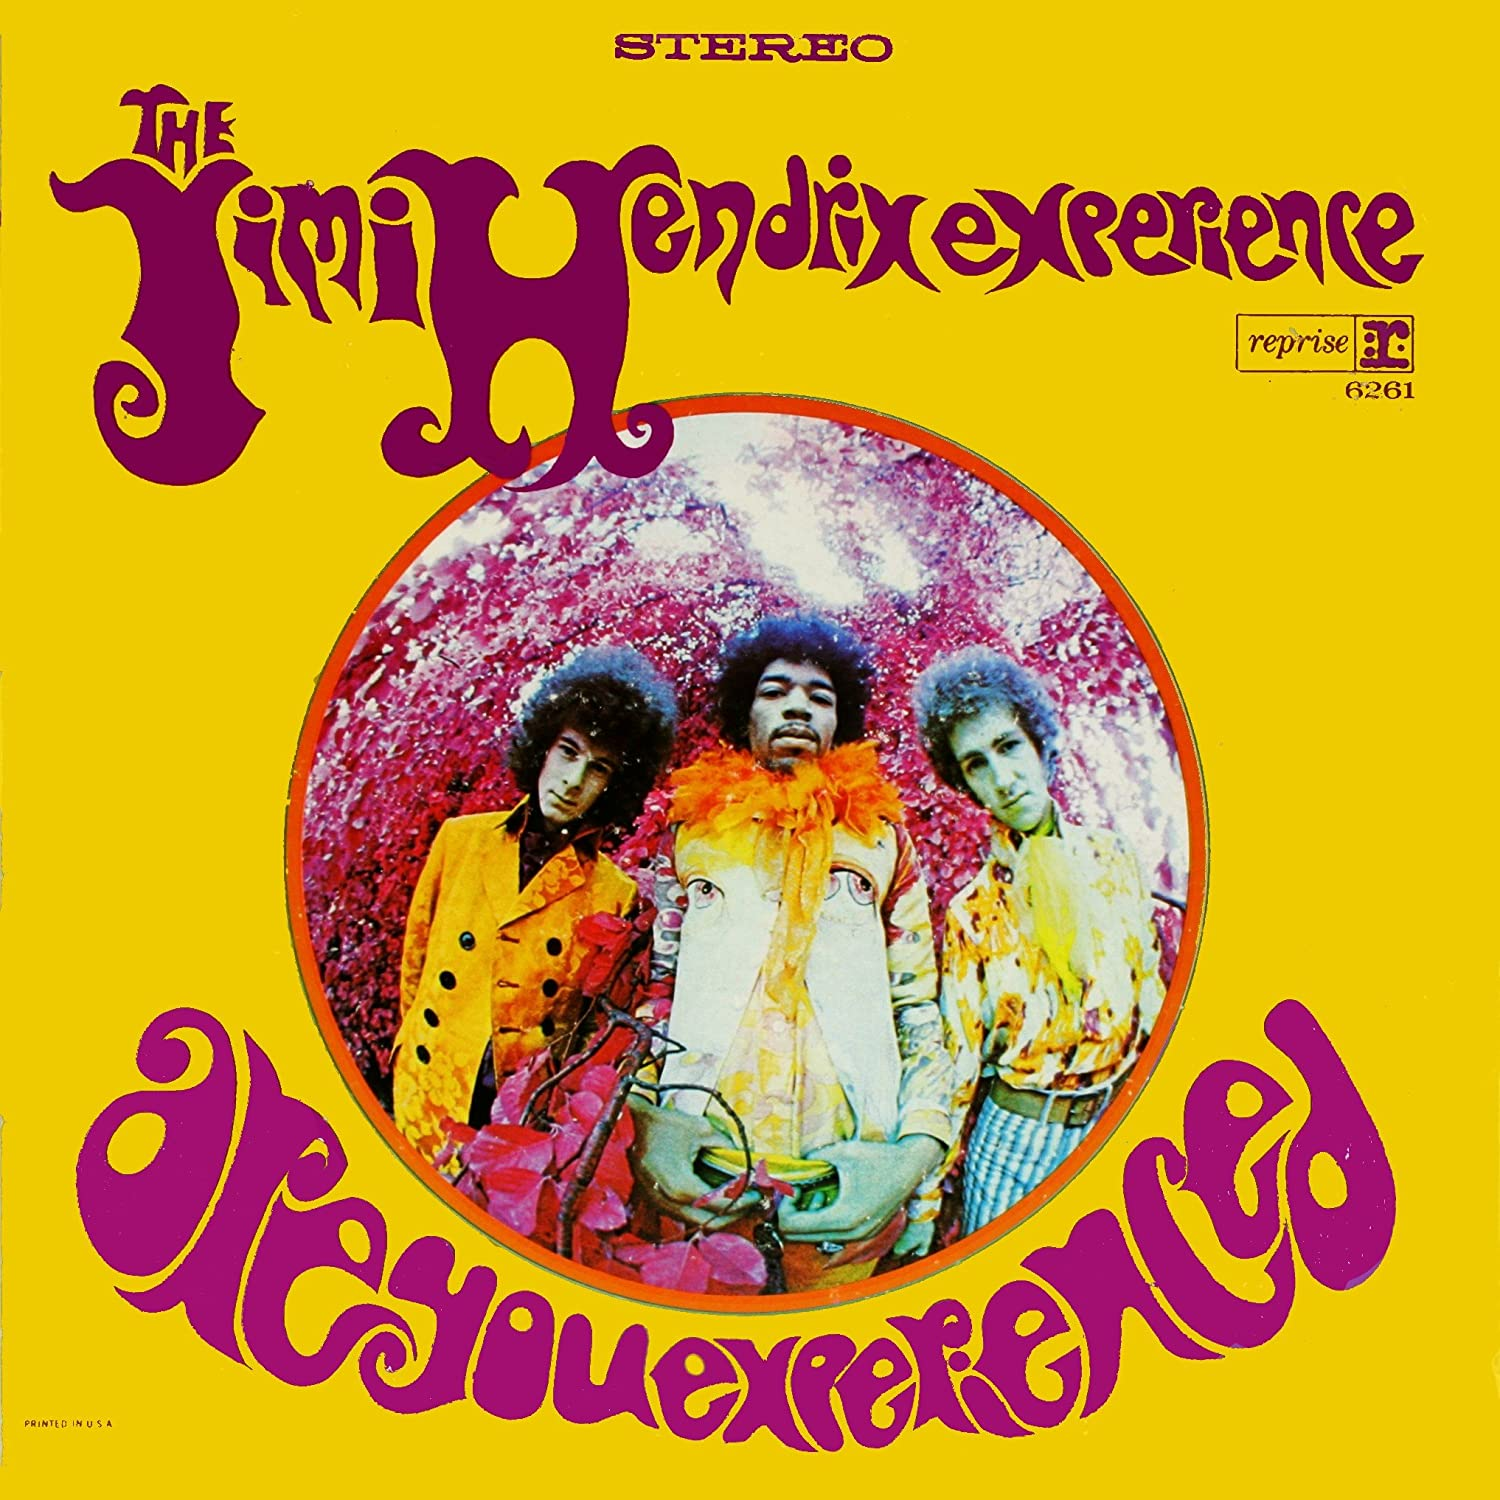 Jimi Hendrix Are You Experienced Album Cover Poster Art Photo Rock Music Posters Photos 12x12